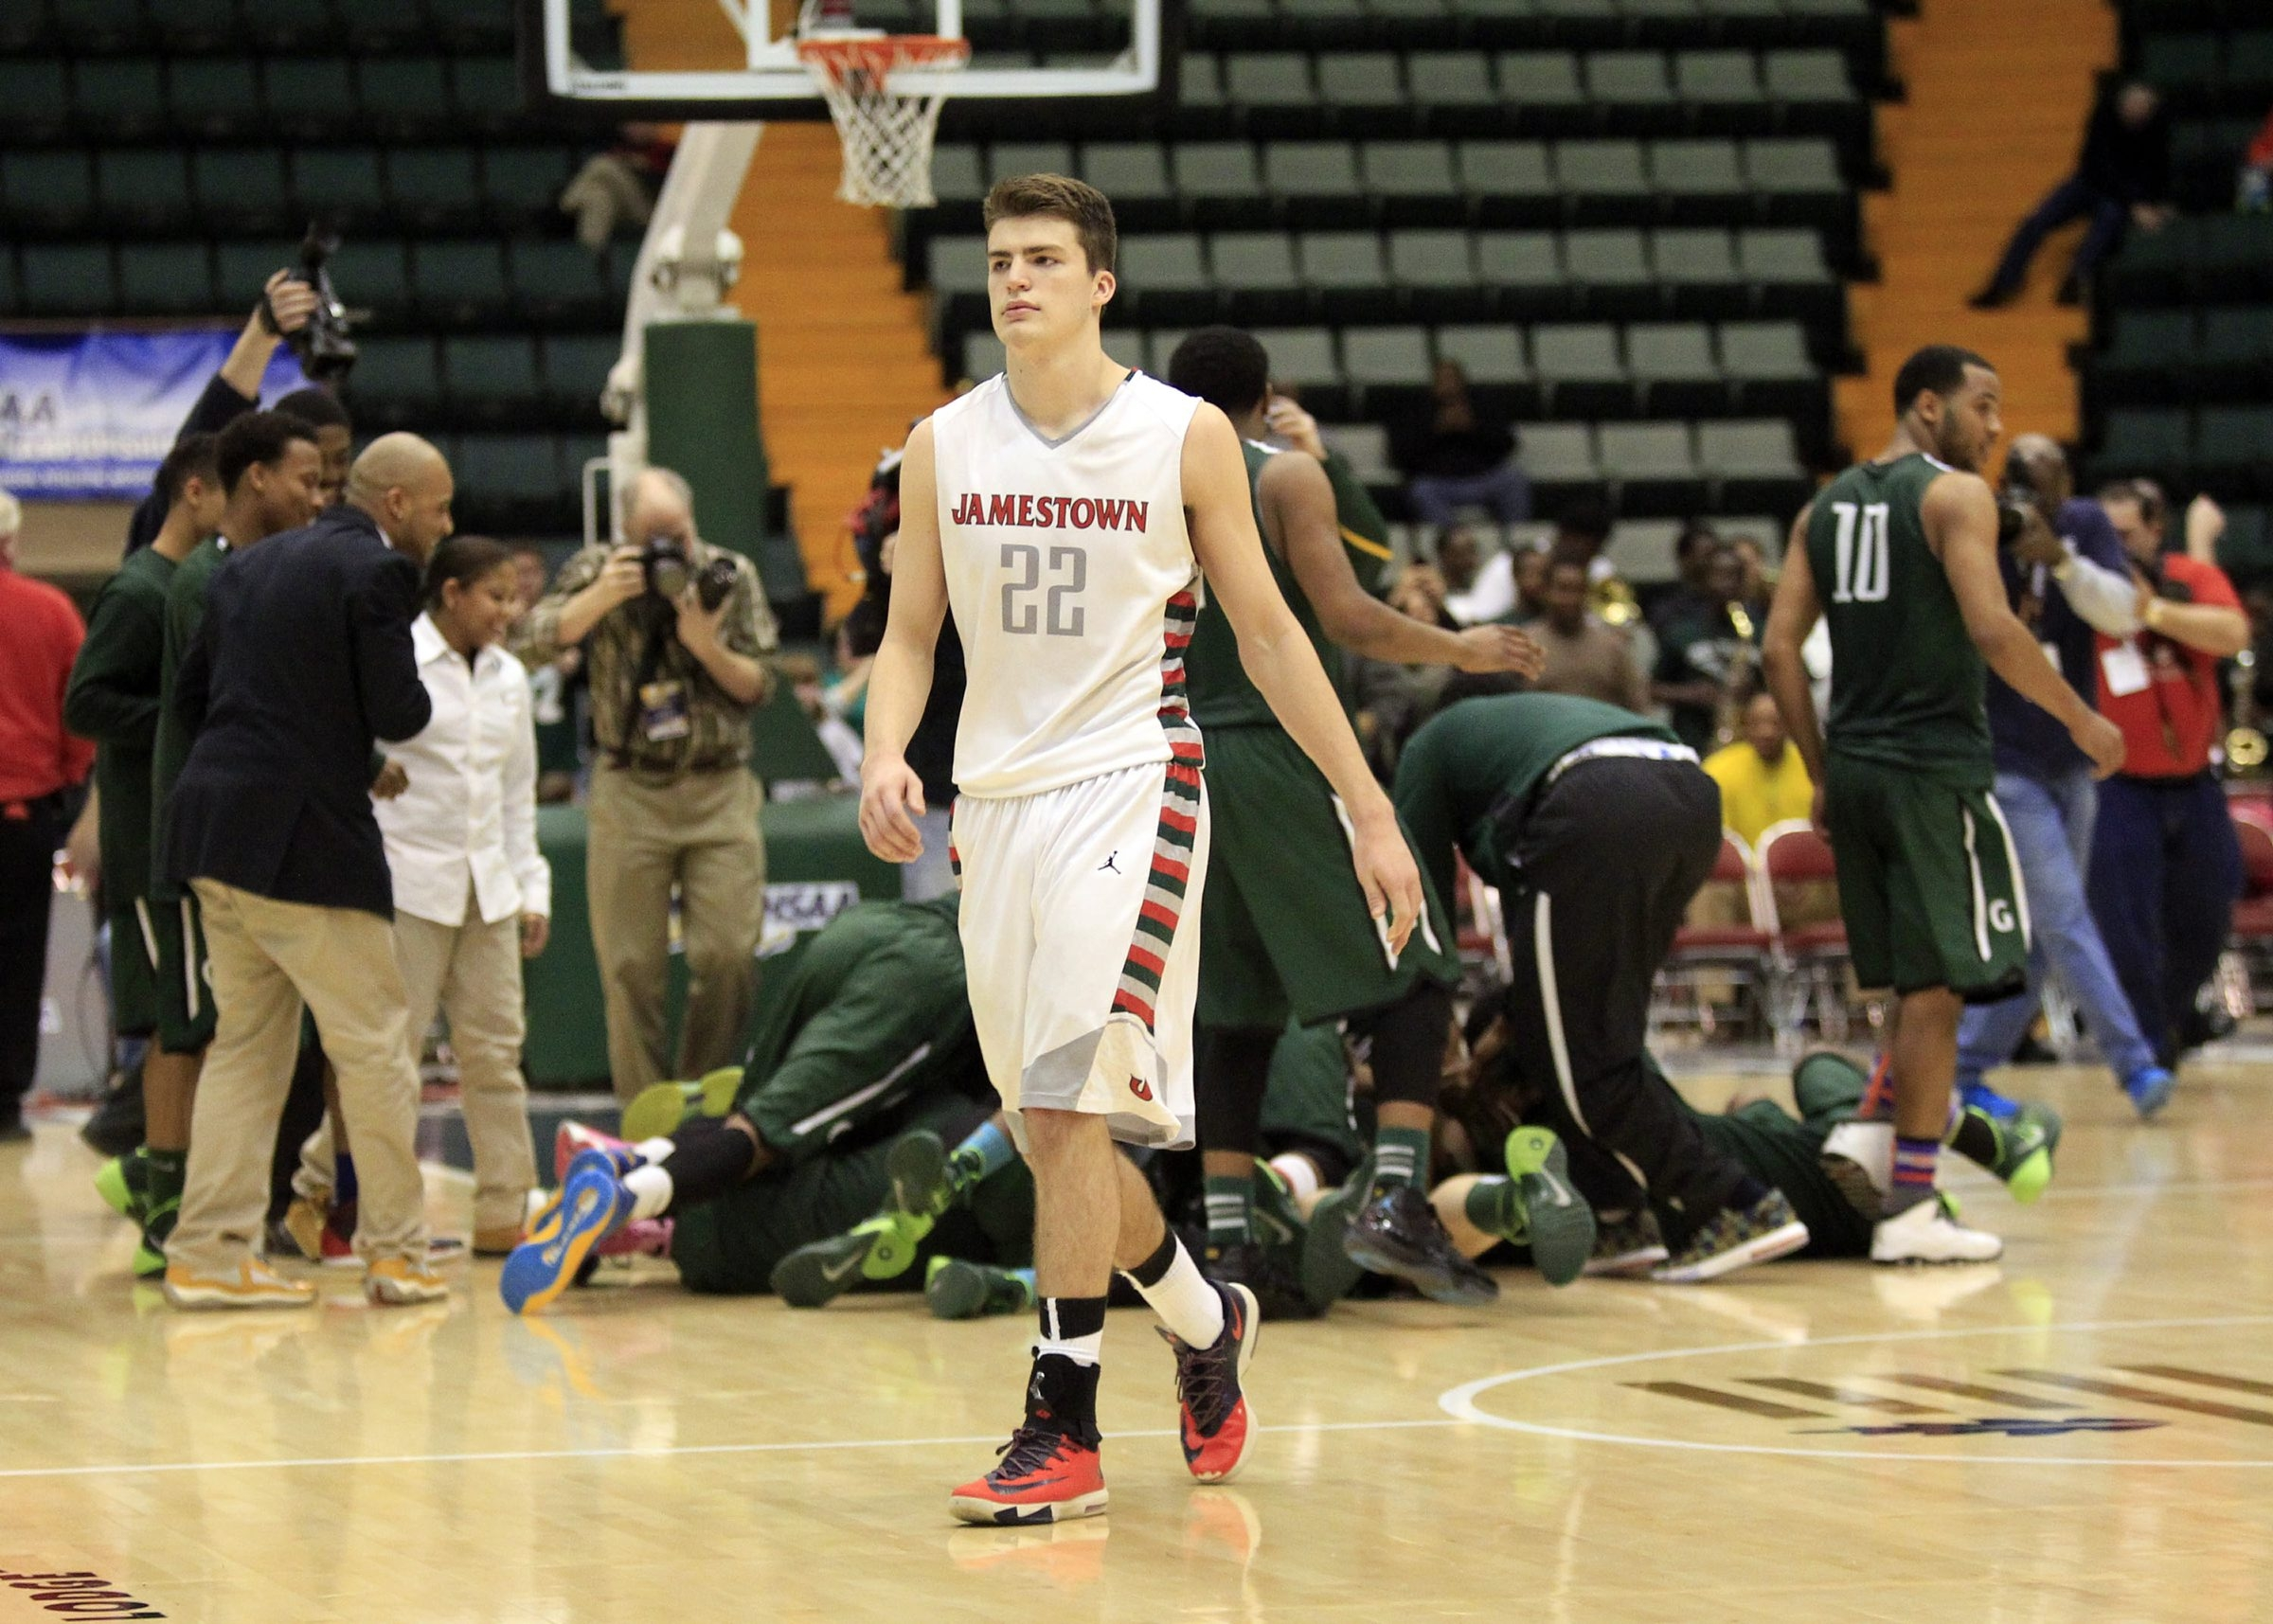 Stephen Carlson walks off as Green Tech players celebrate in the background after the Eagles' 54-49 win in the state Class AA title game.